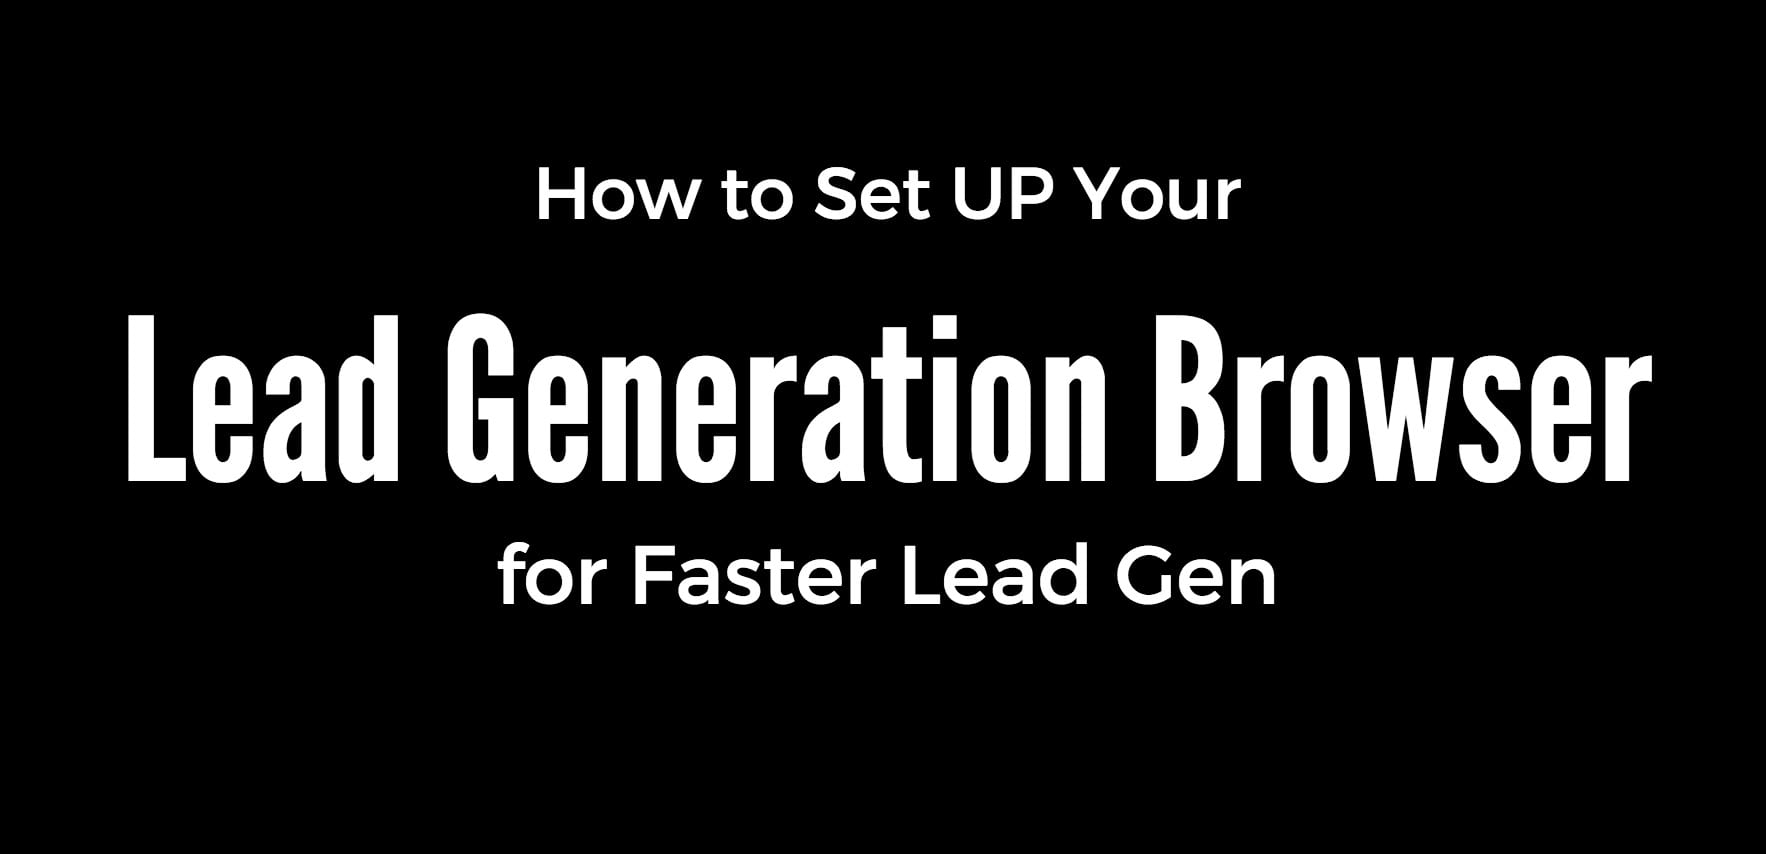 Lead Generation Browser